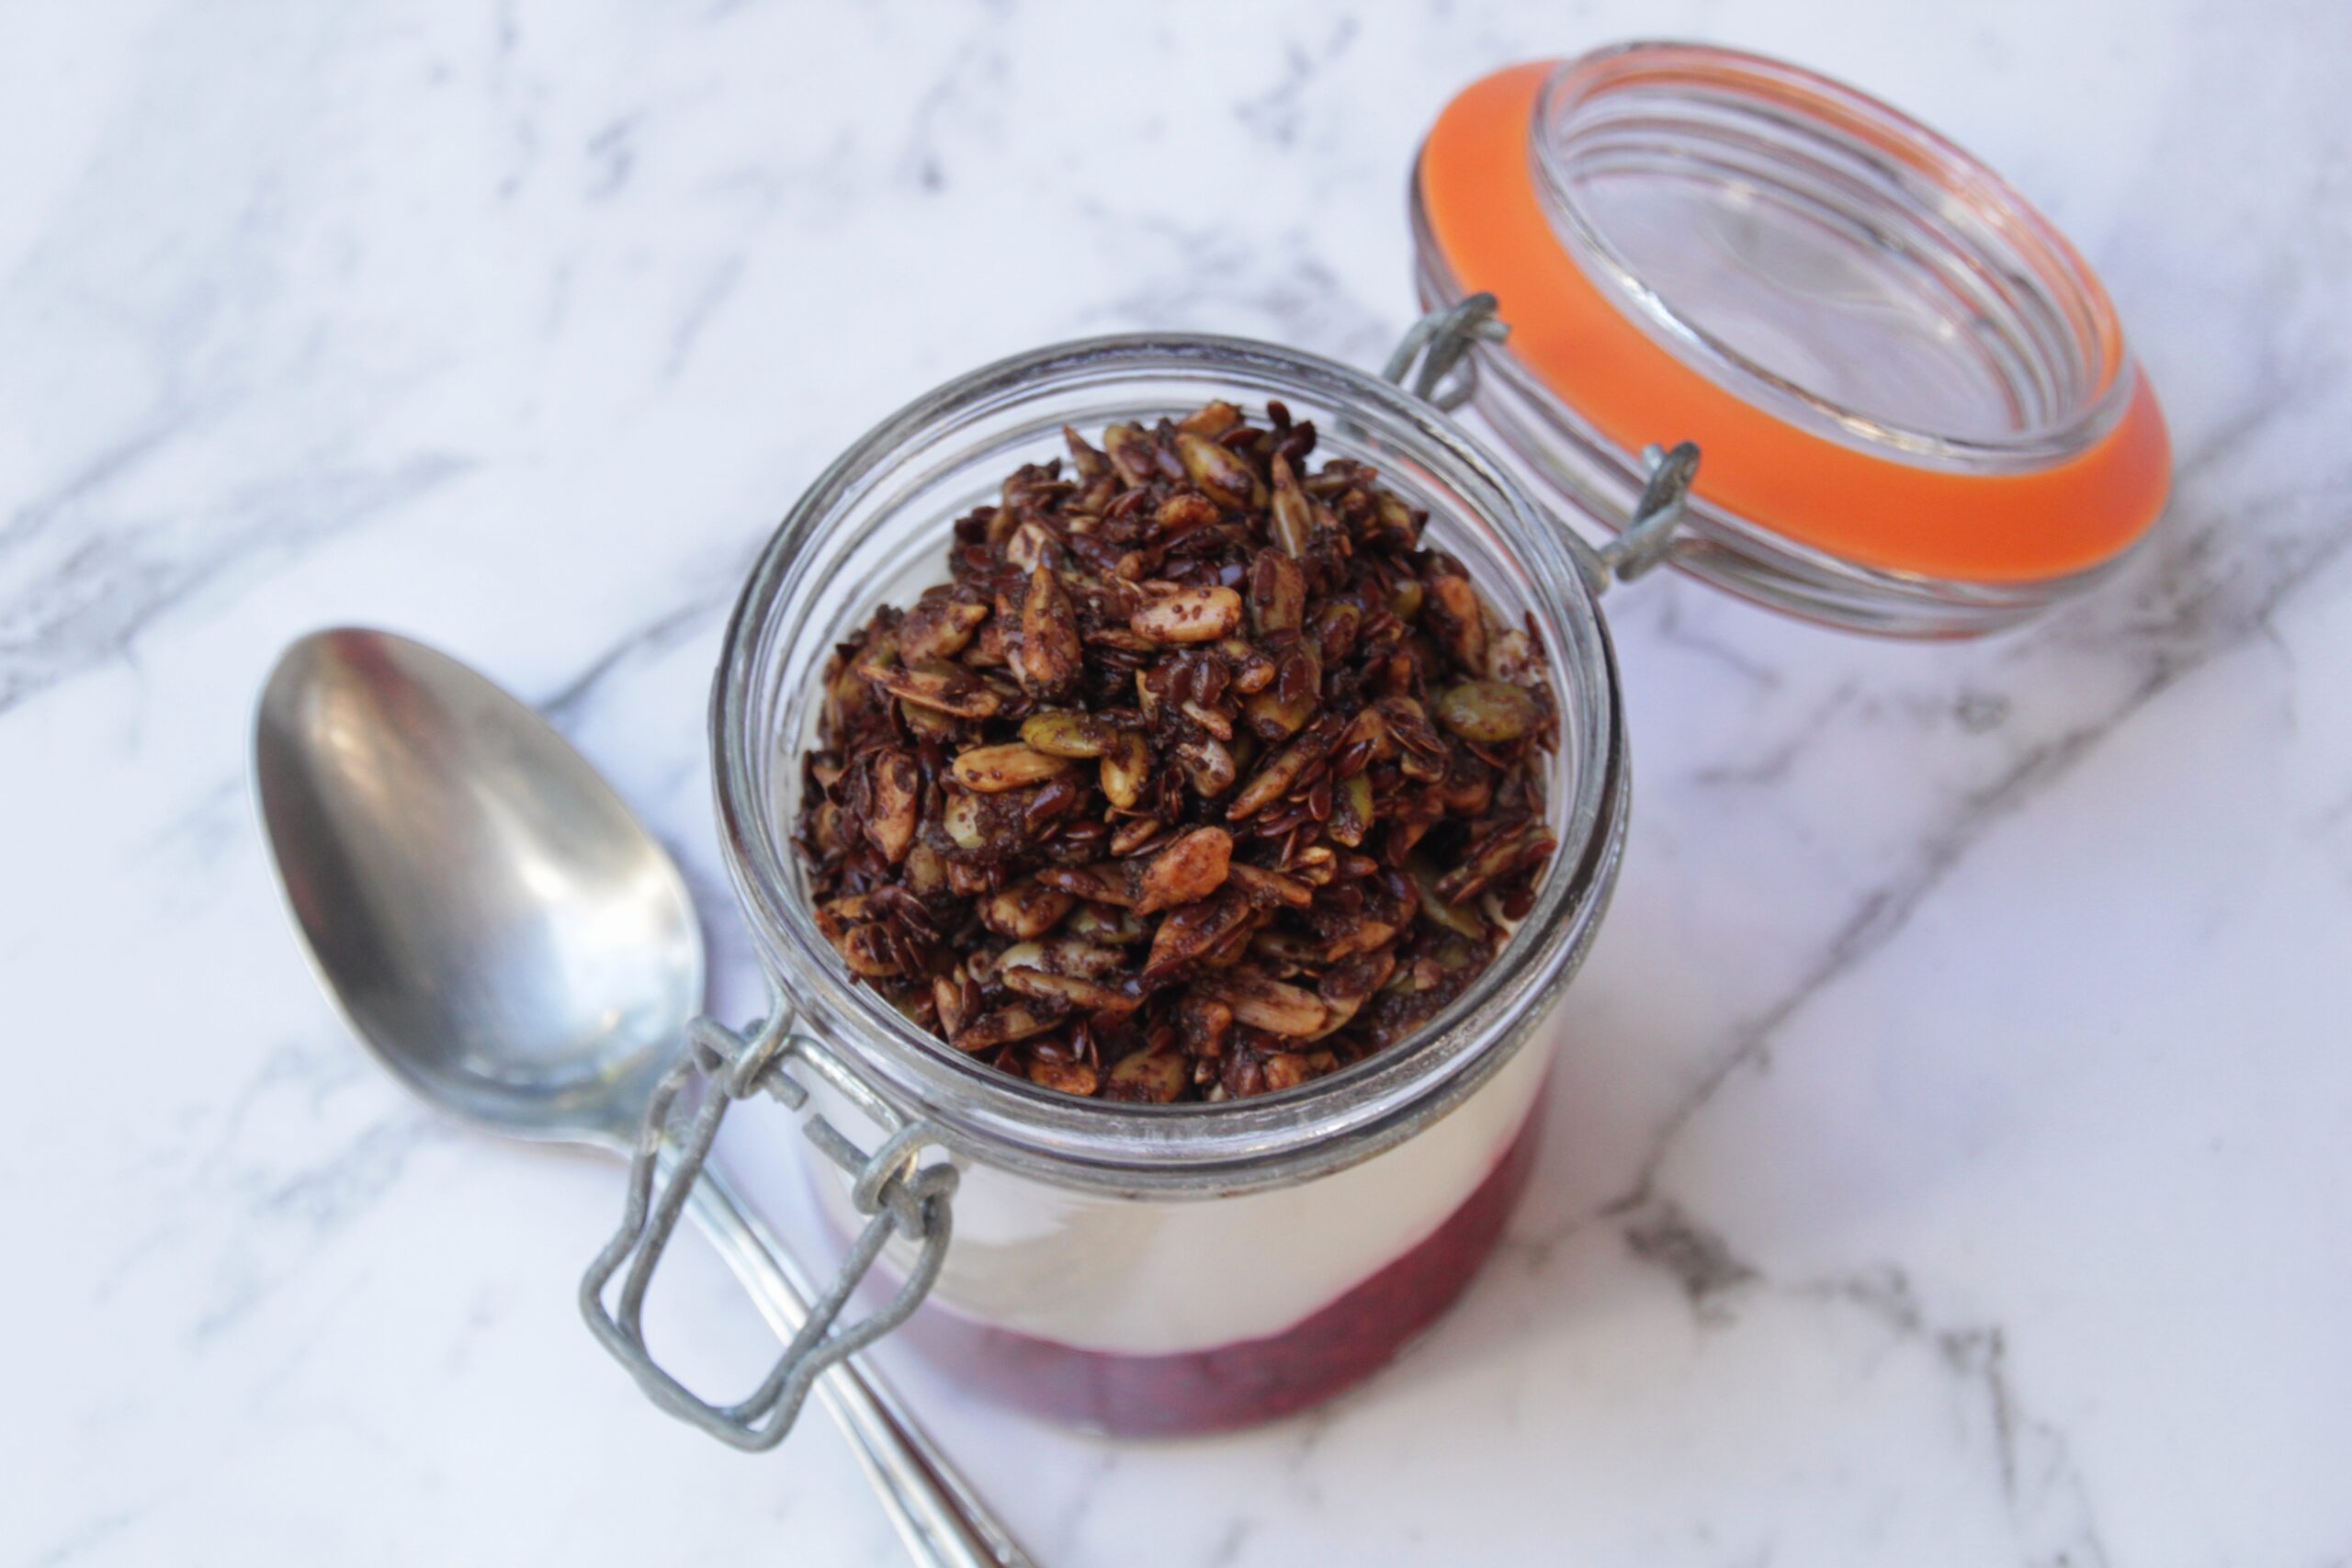 Homemade Chocolate Granola (Paleo, Low Carb, Vegan)